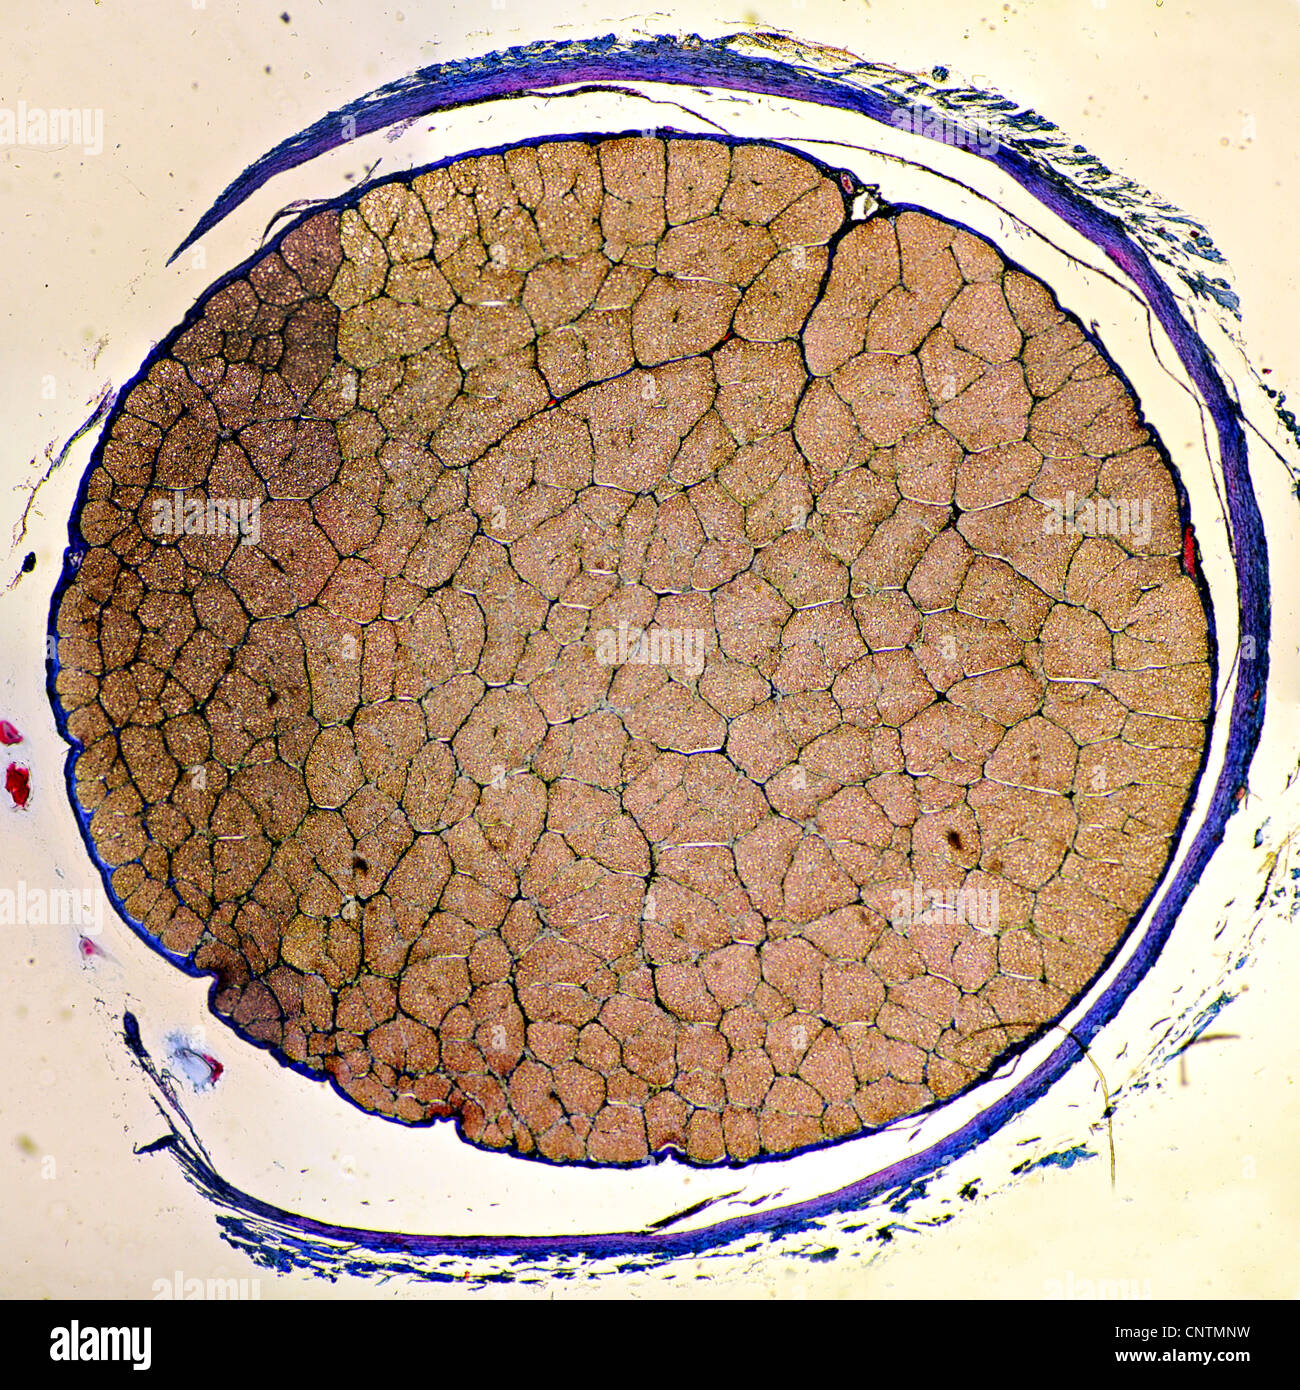 Cross section of the optic nerve - Stock Image